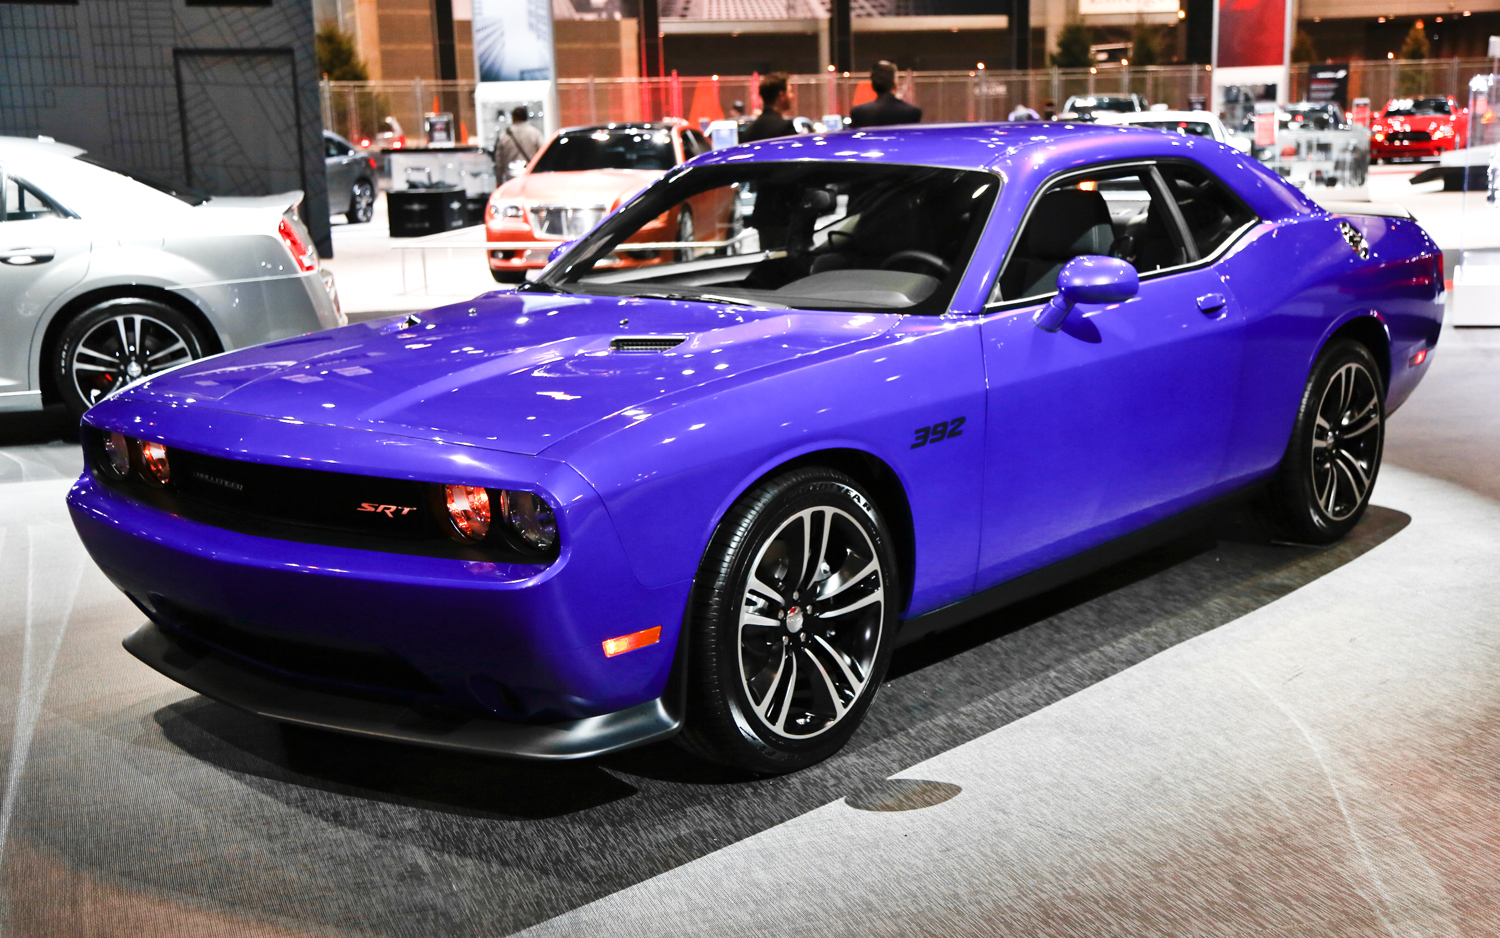 Top 10 Things to See at the 2013 Chicago Auto Show - Motor Trend